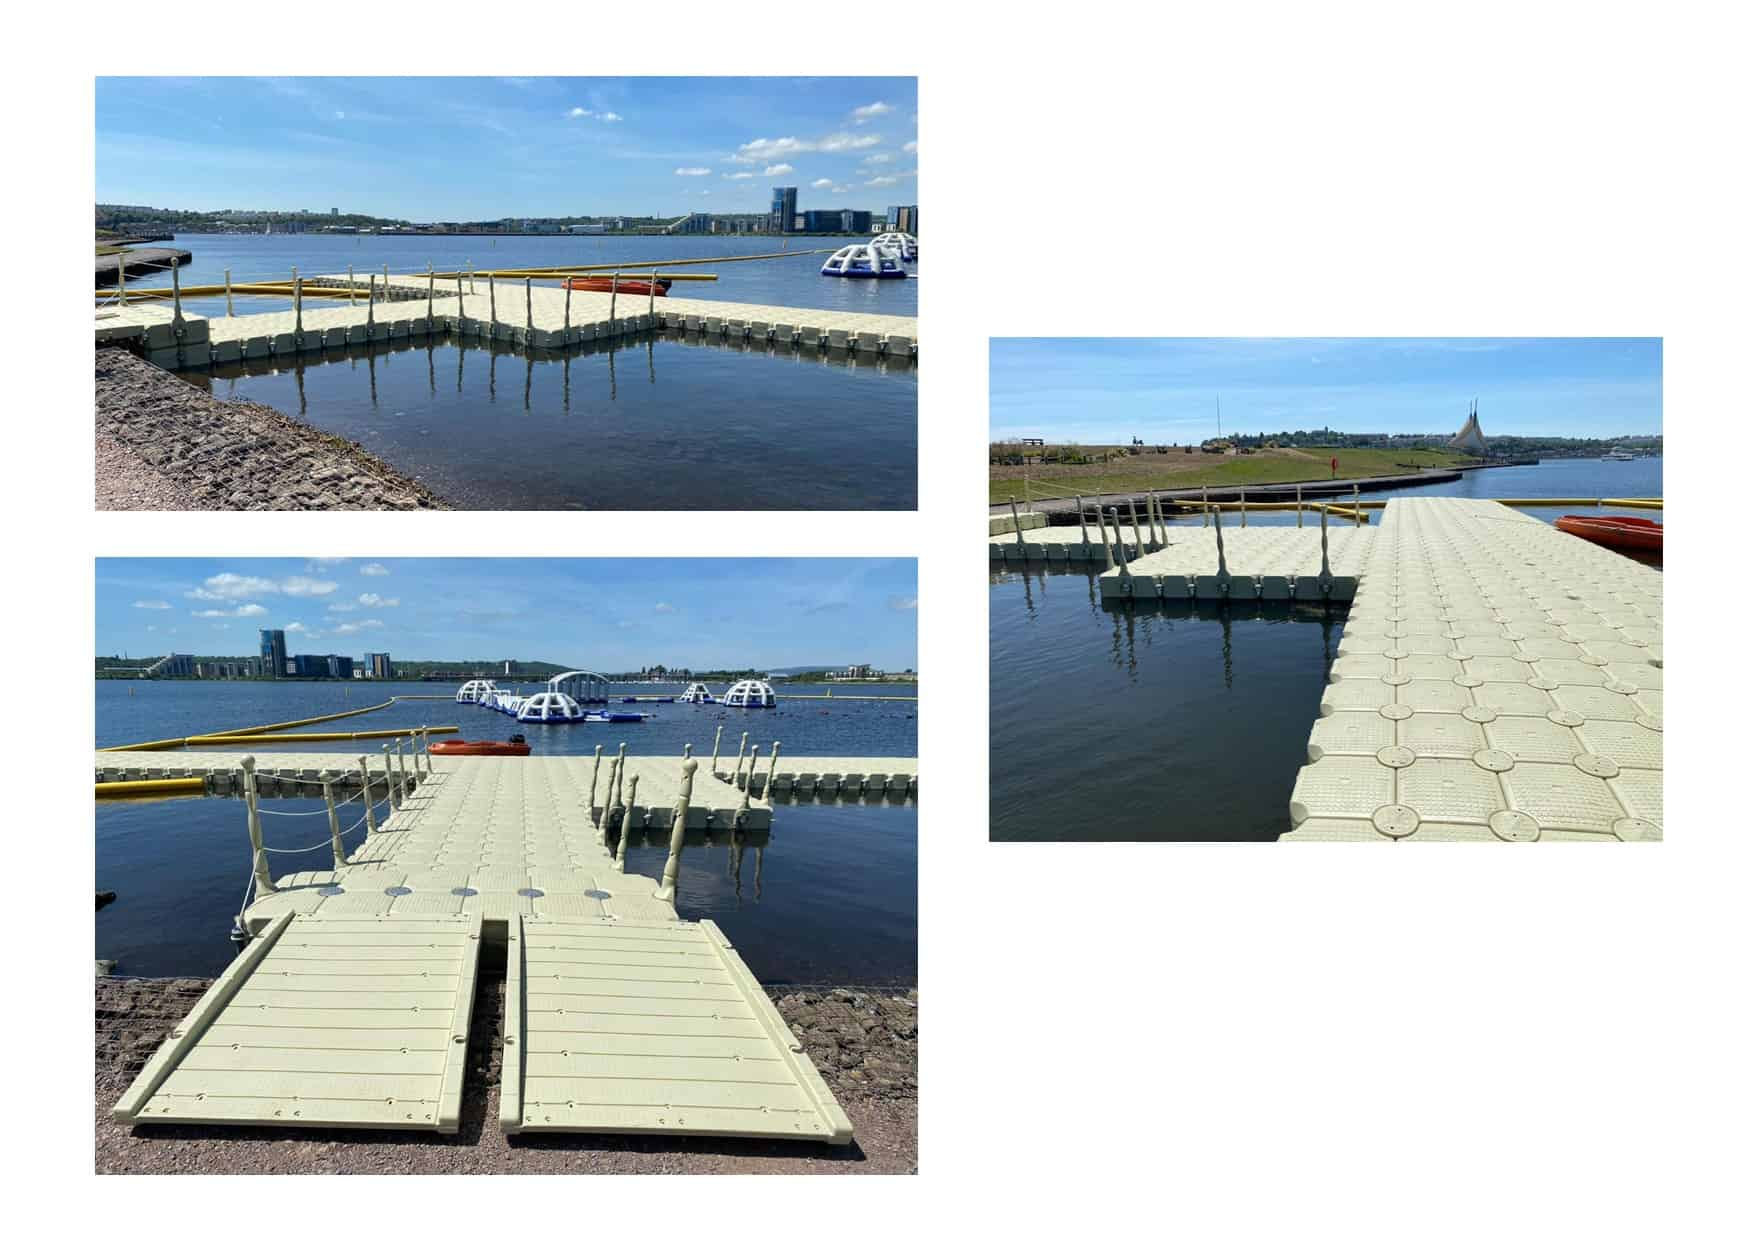 Aquaparks Cardiff Rotodock pontoon with handrails, cleats and gangway